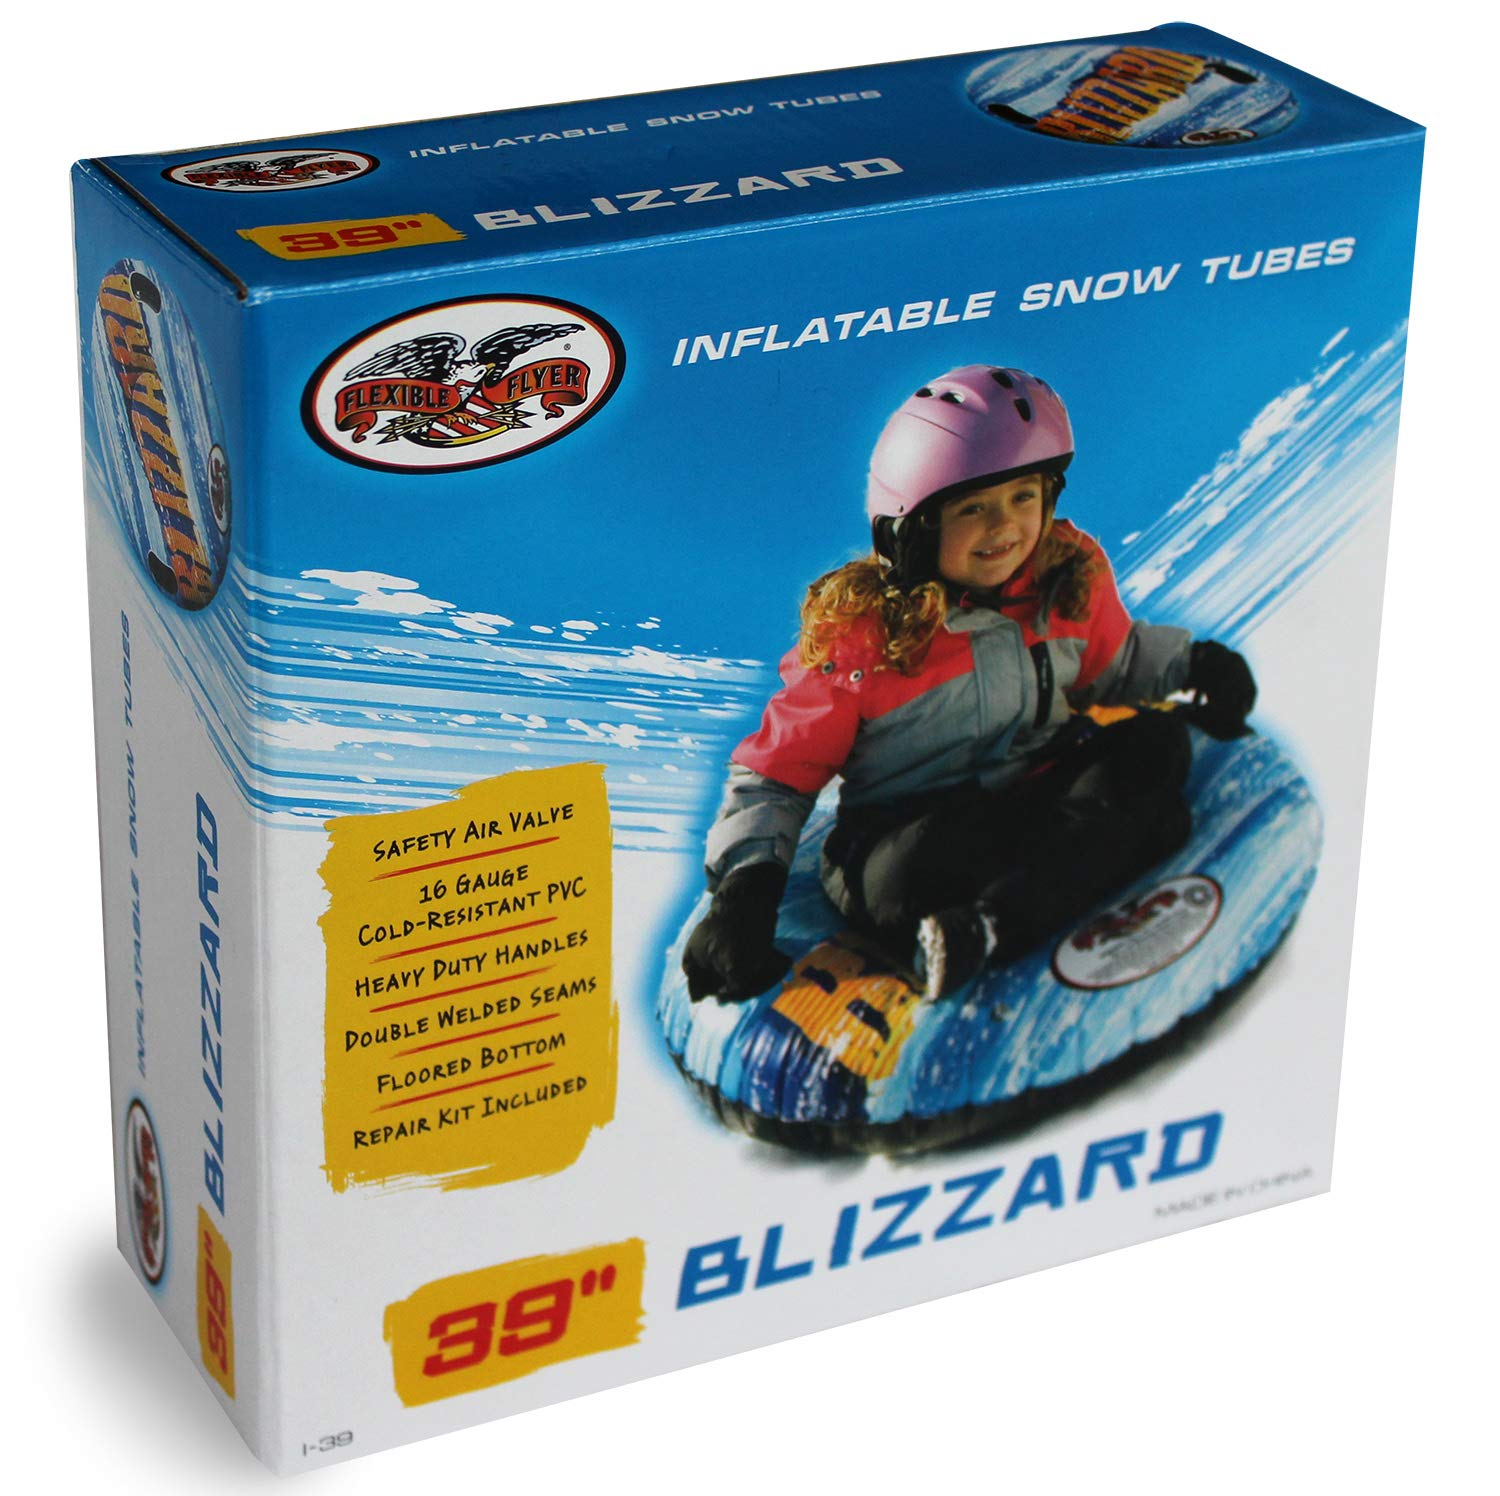 Paricon Flexible Flyer 39-Inch Inflatable Snow Tube